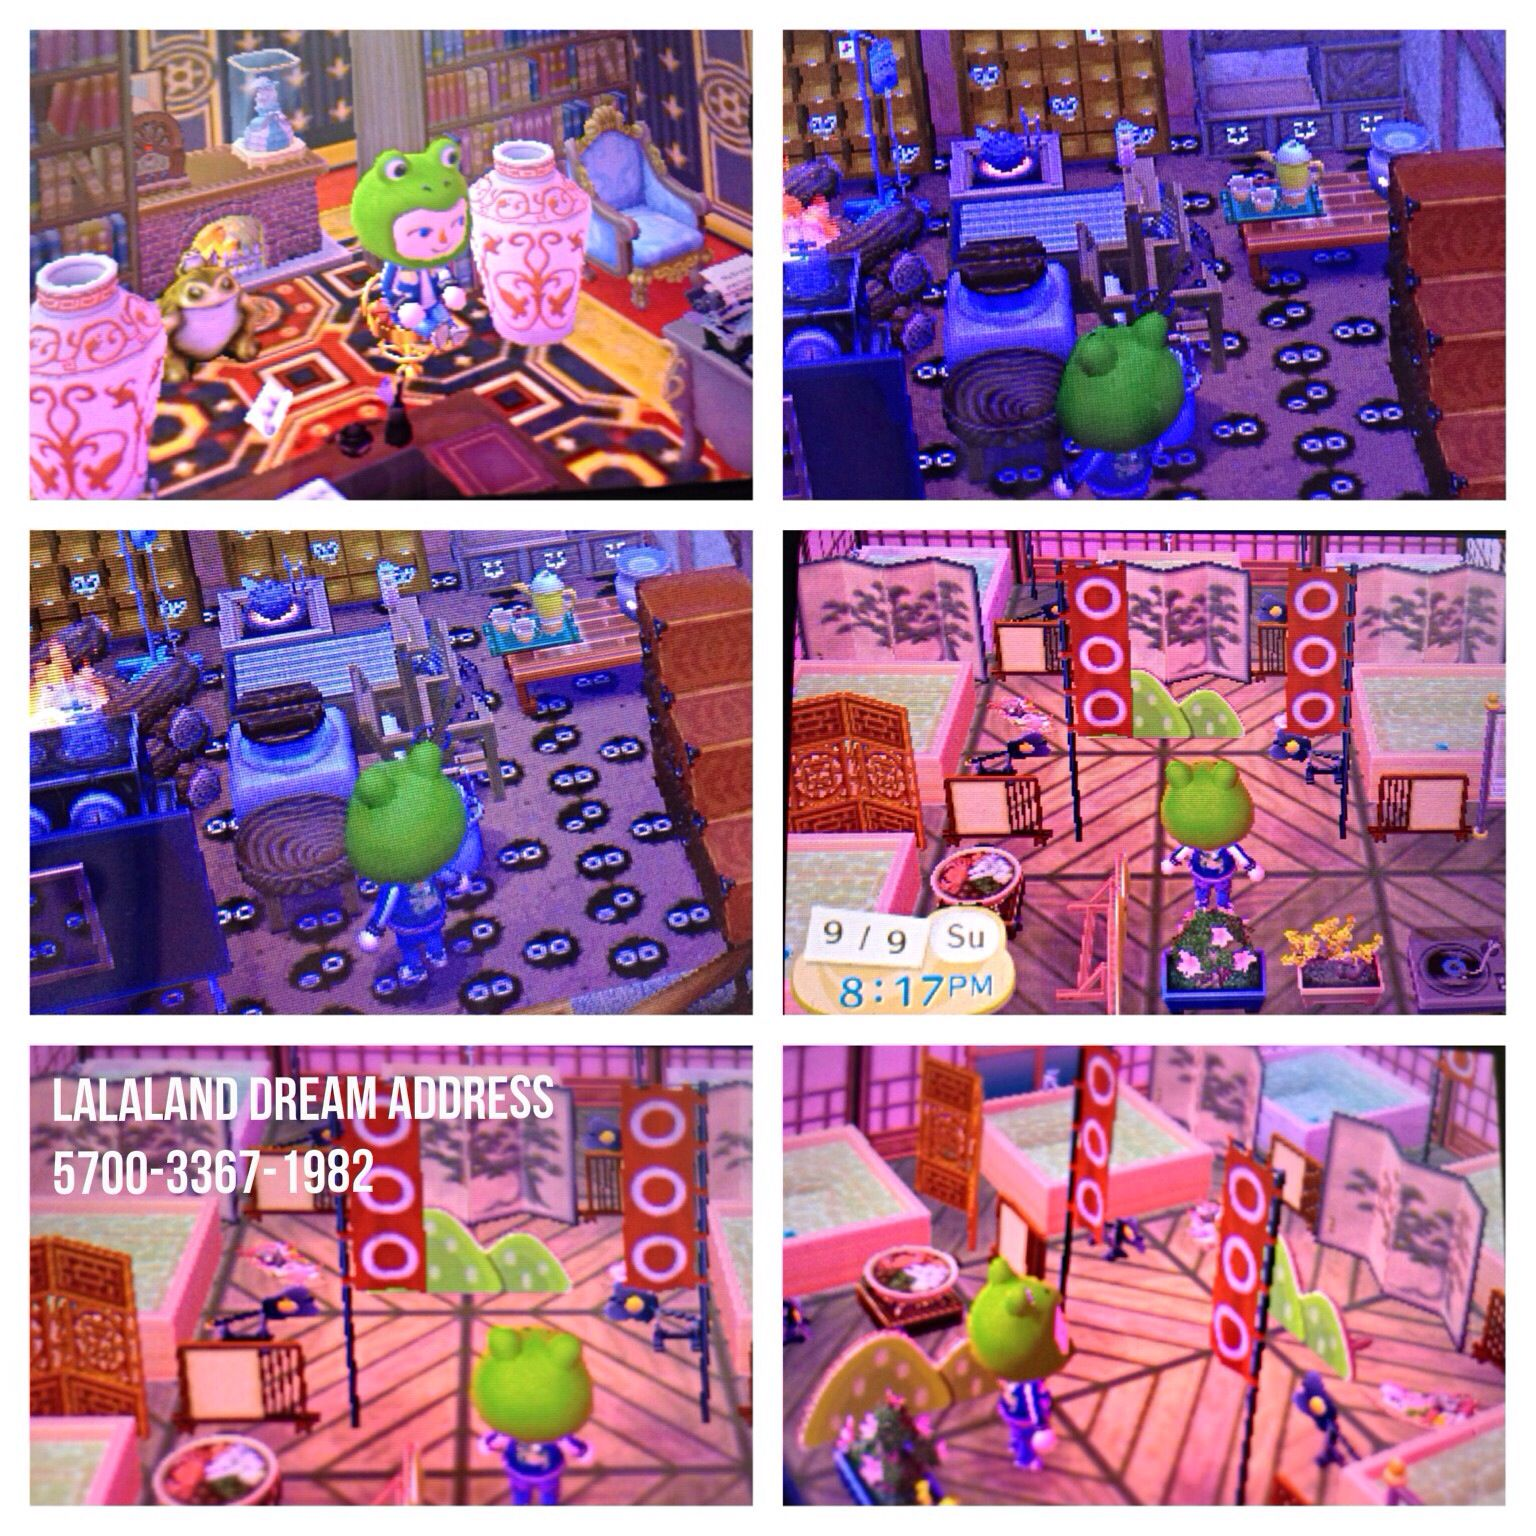 My Spirited Away Bathhouse In Animal Crossing New Leaf Dream Address Dream Address 5700 3367 1982 Animalcrossing Animal Crossing Animal Crossing Qr Acnl